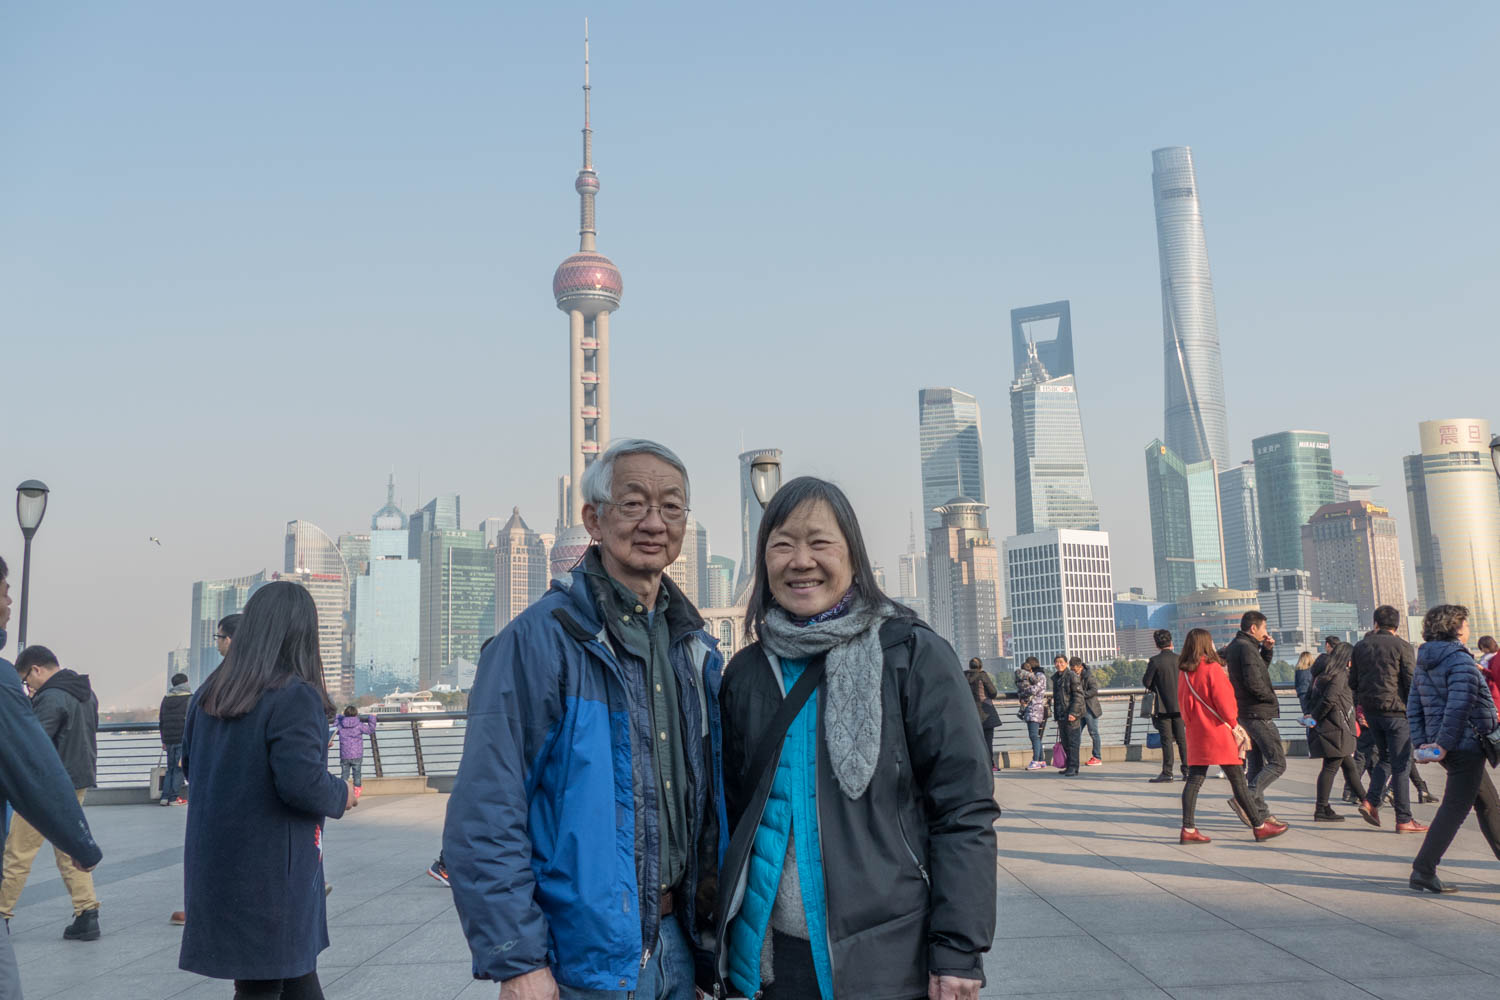 An old fashioned selfie on the Bund with Pudong in the back